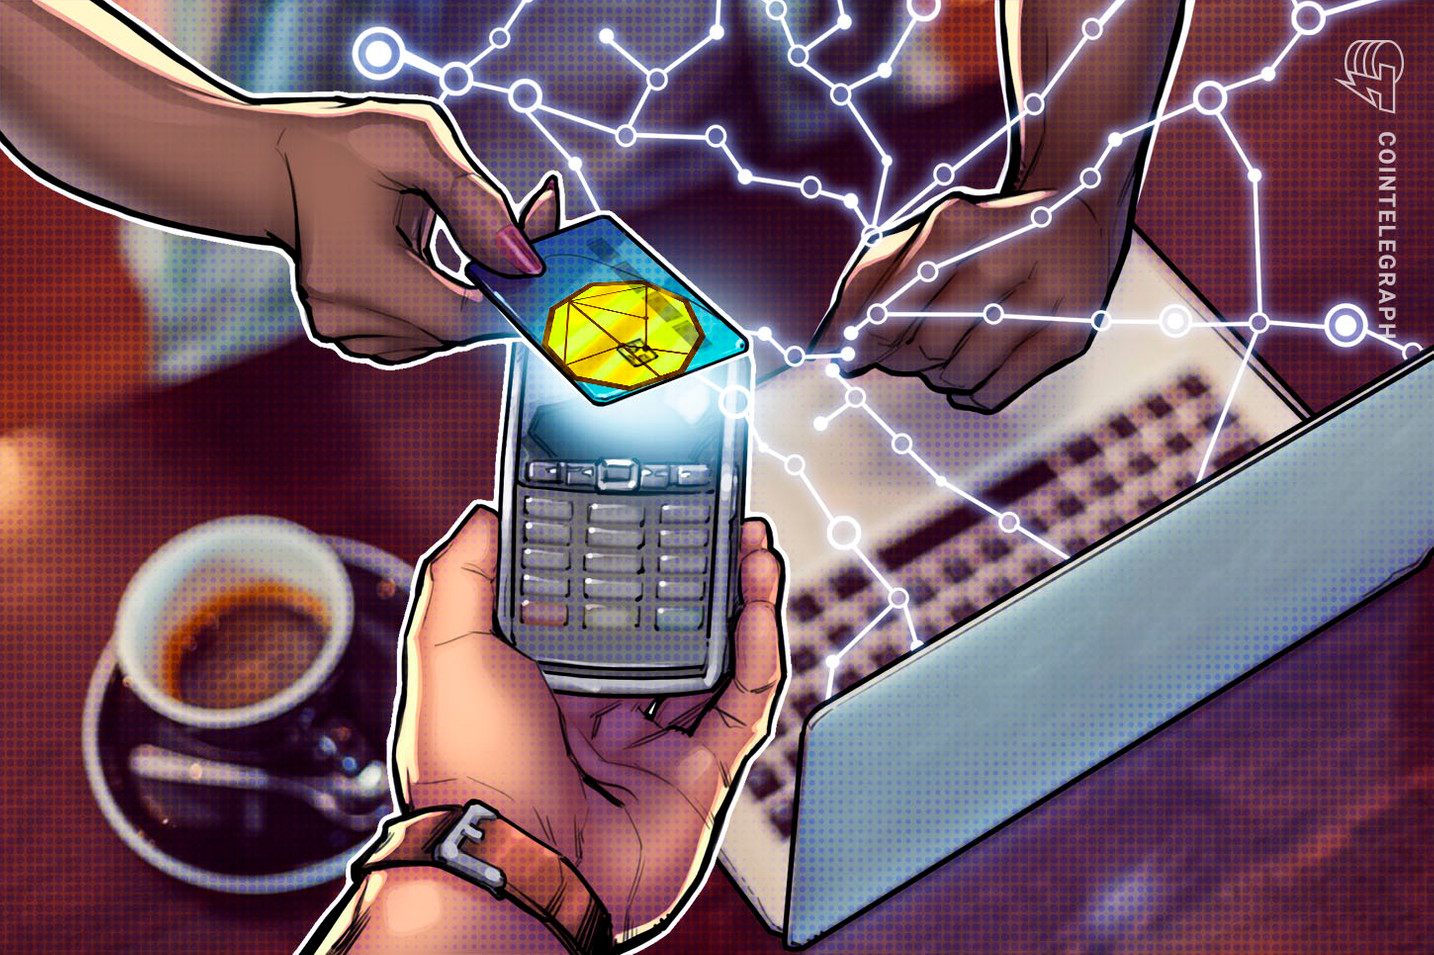 Institutional exchange launches crypto debit card